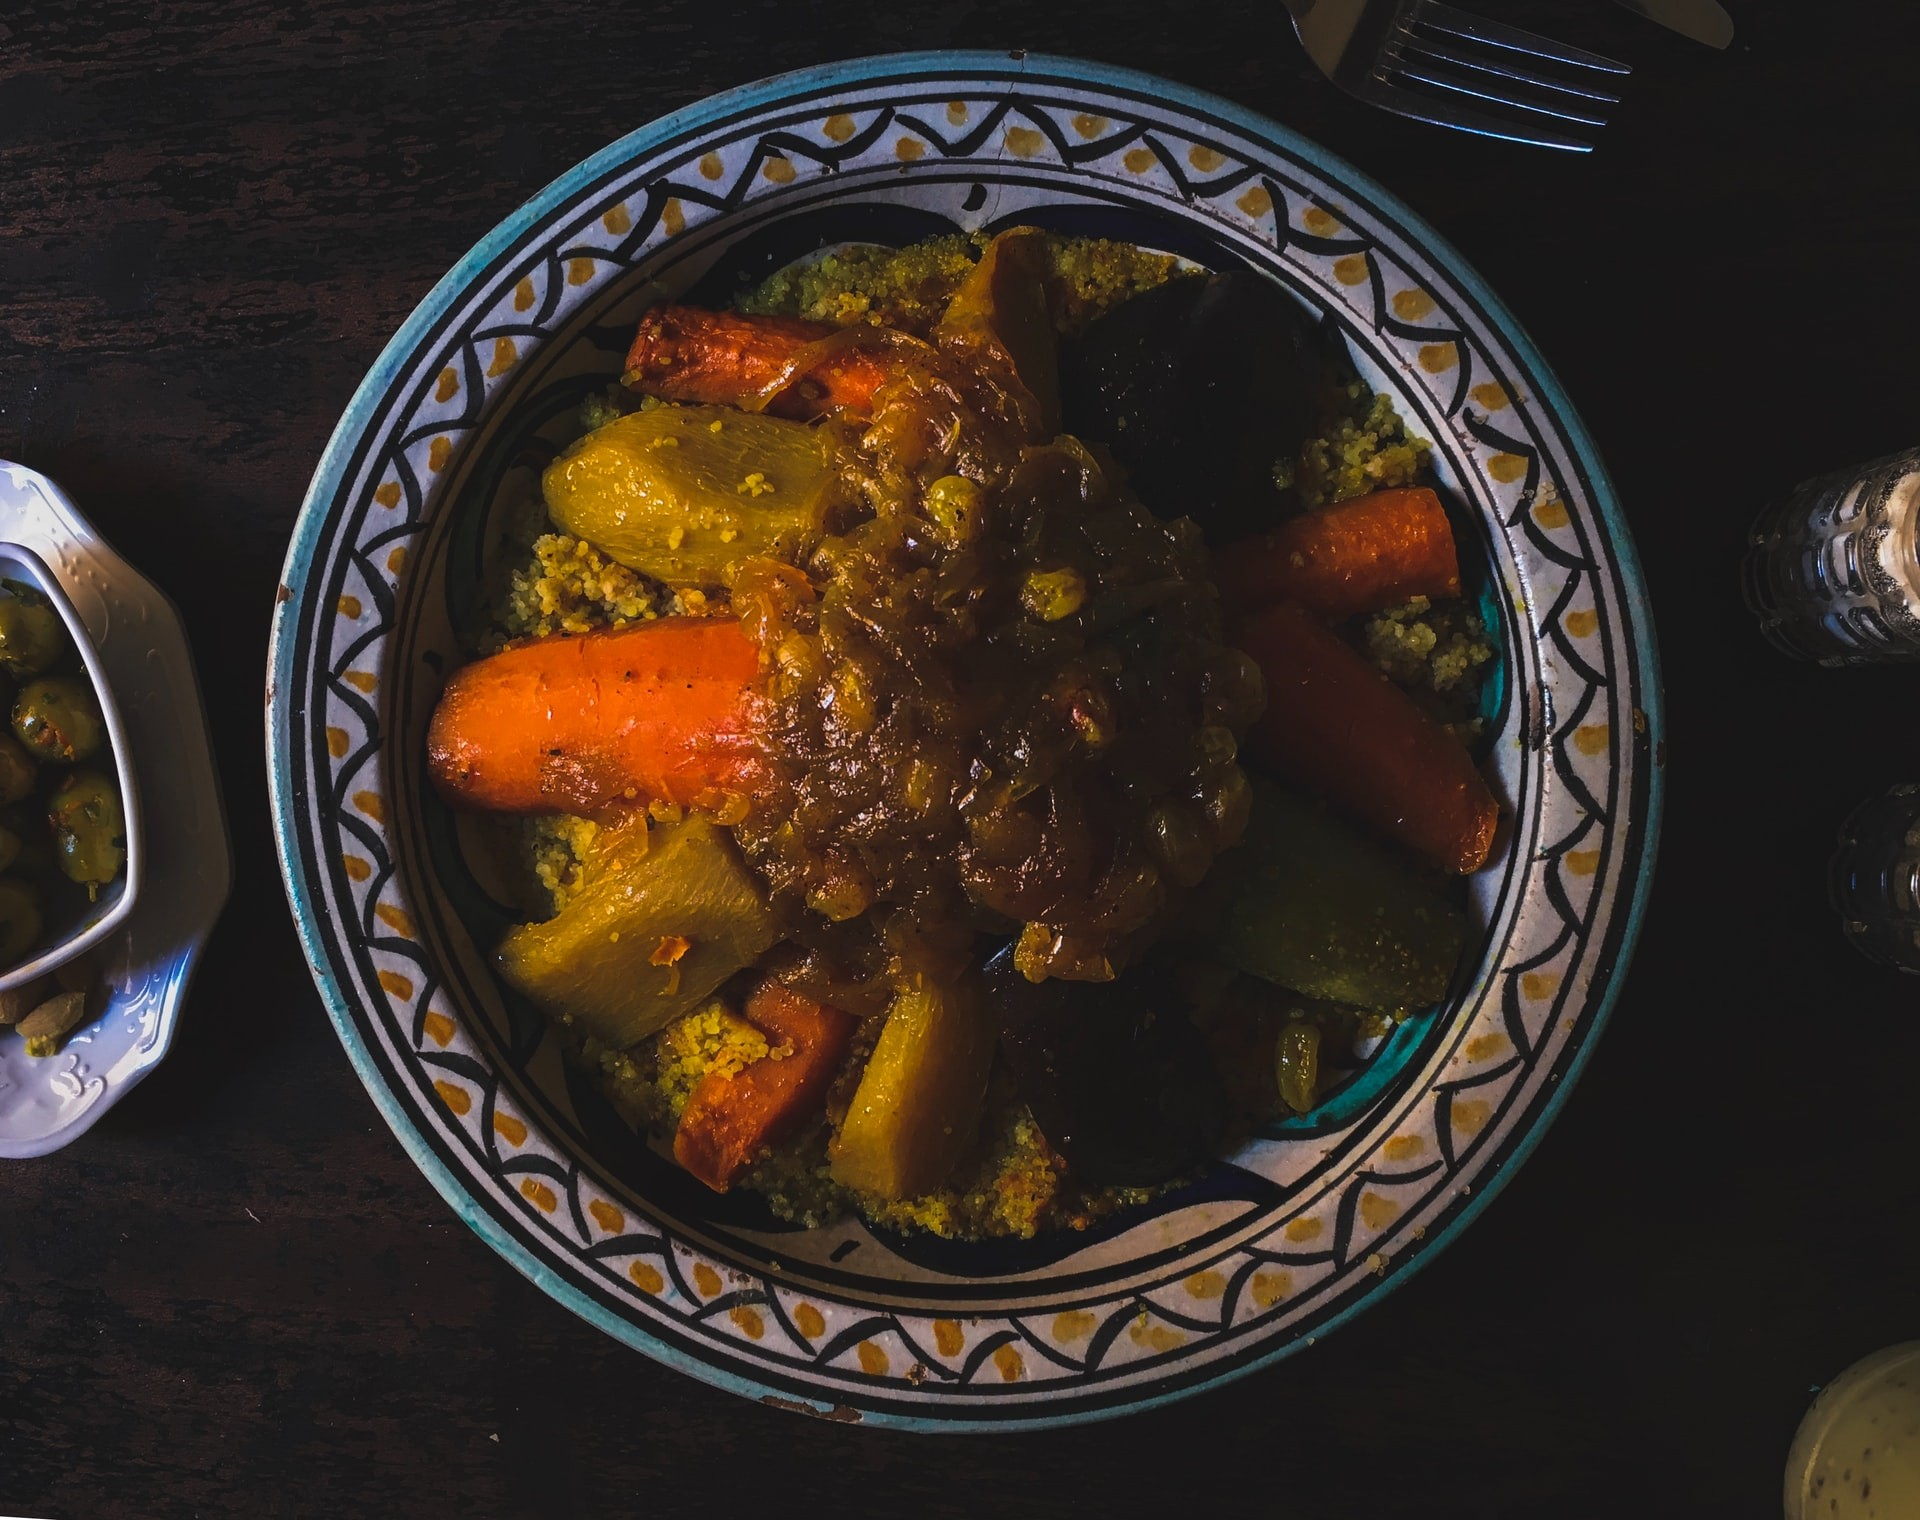 Couscous Maghreb North African food